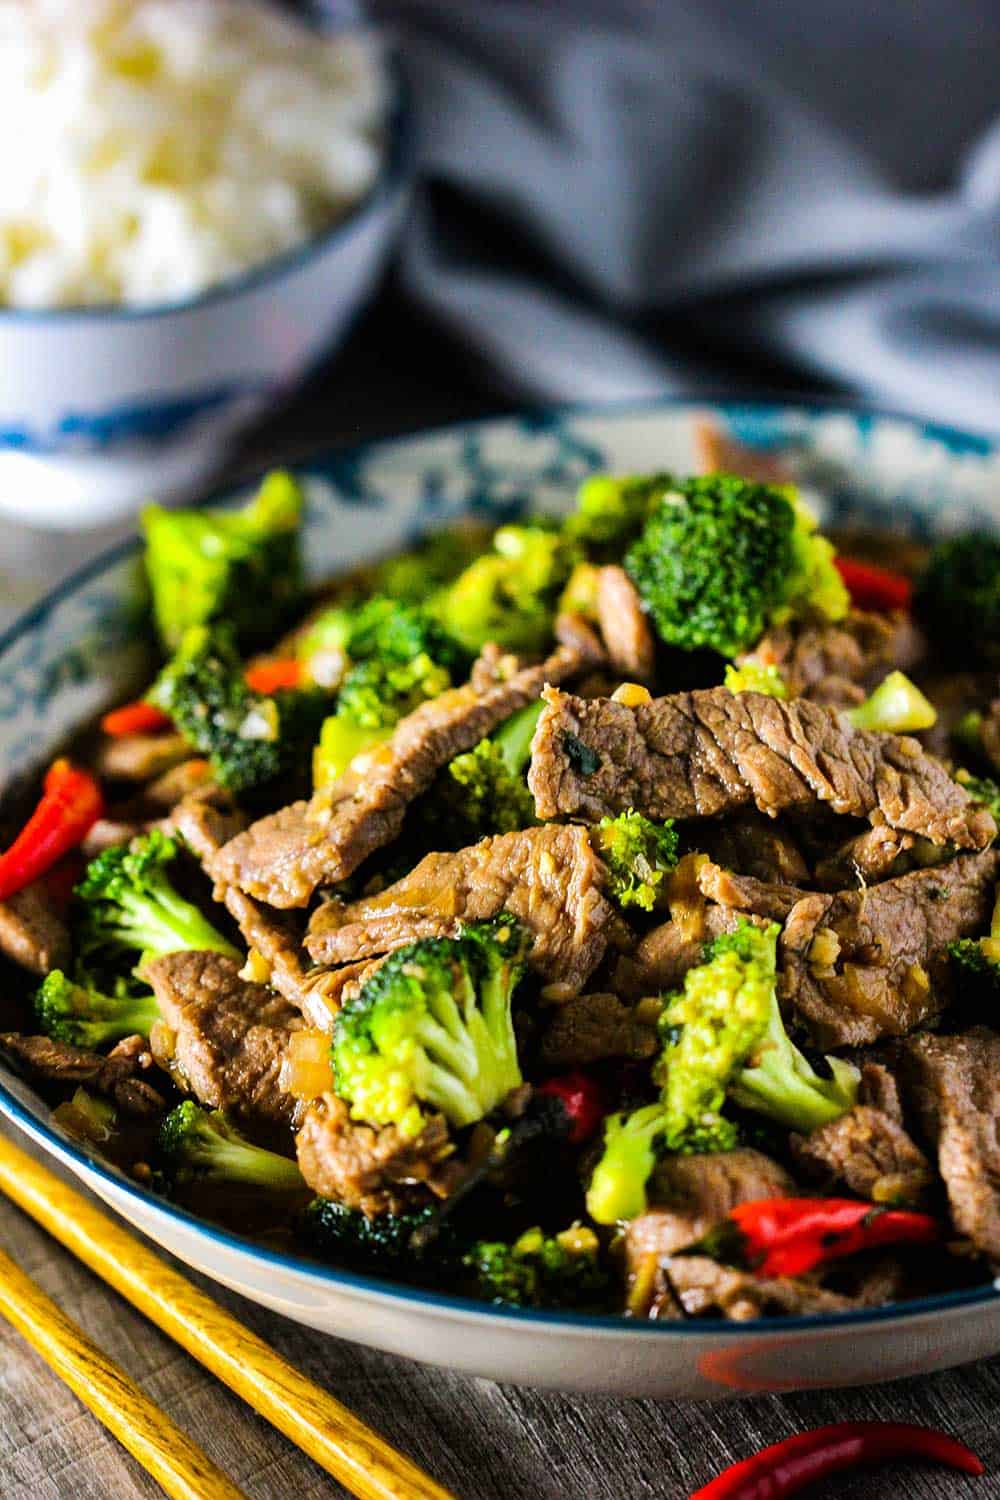 Cooked beef and broccoli stir-fry in a large serving dish.